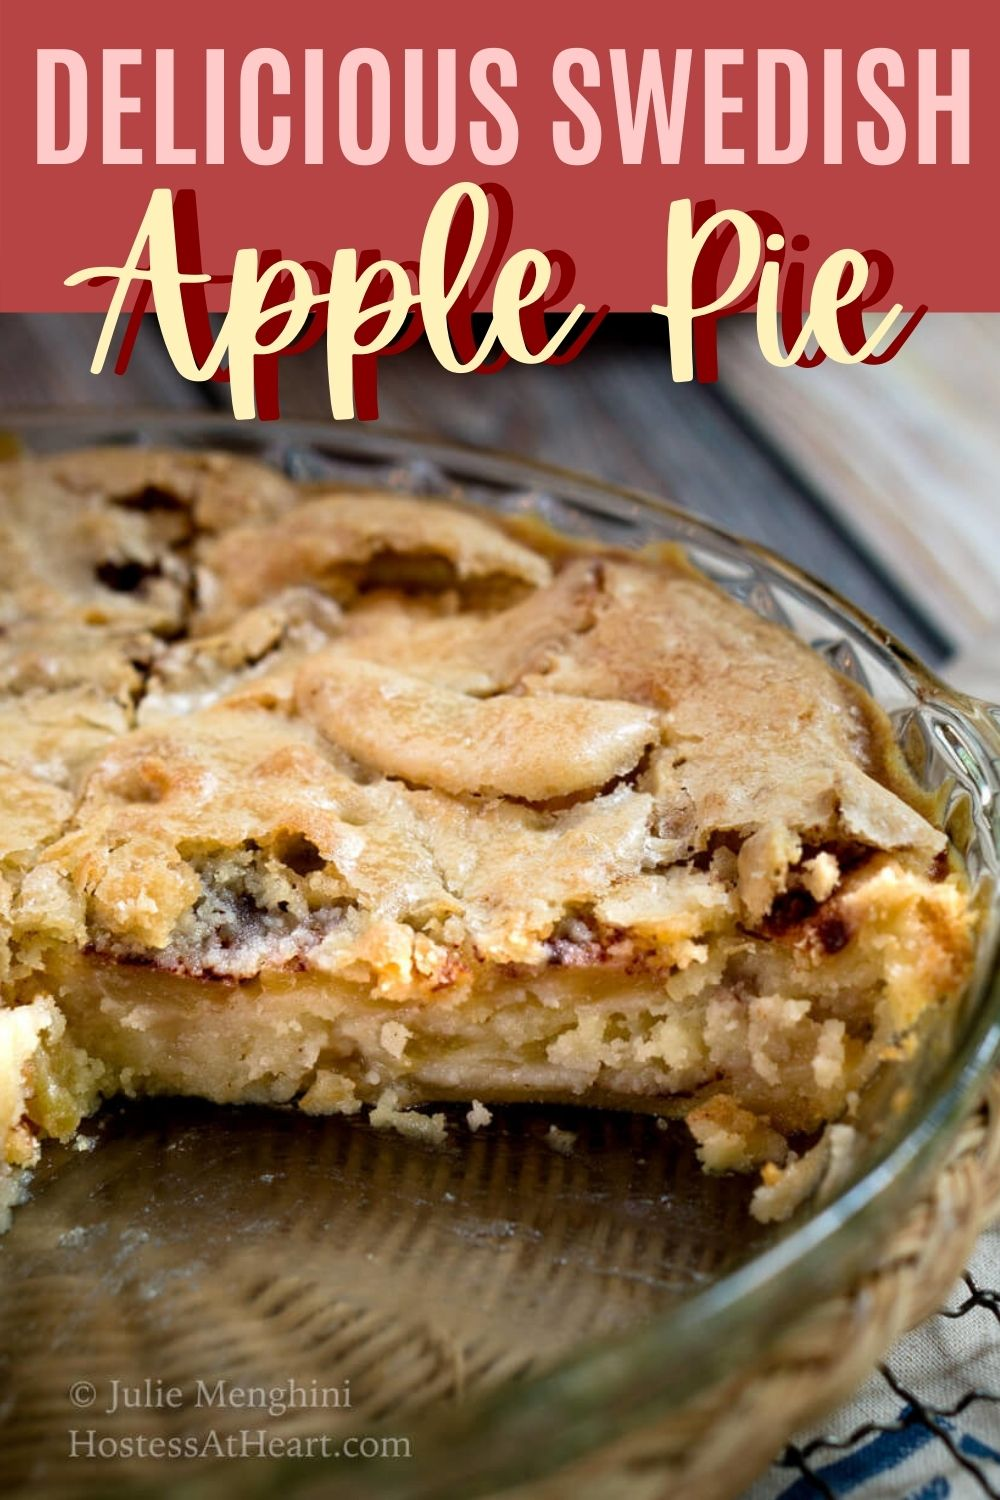 An apple pie with a slice missing